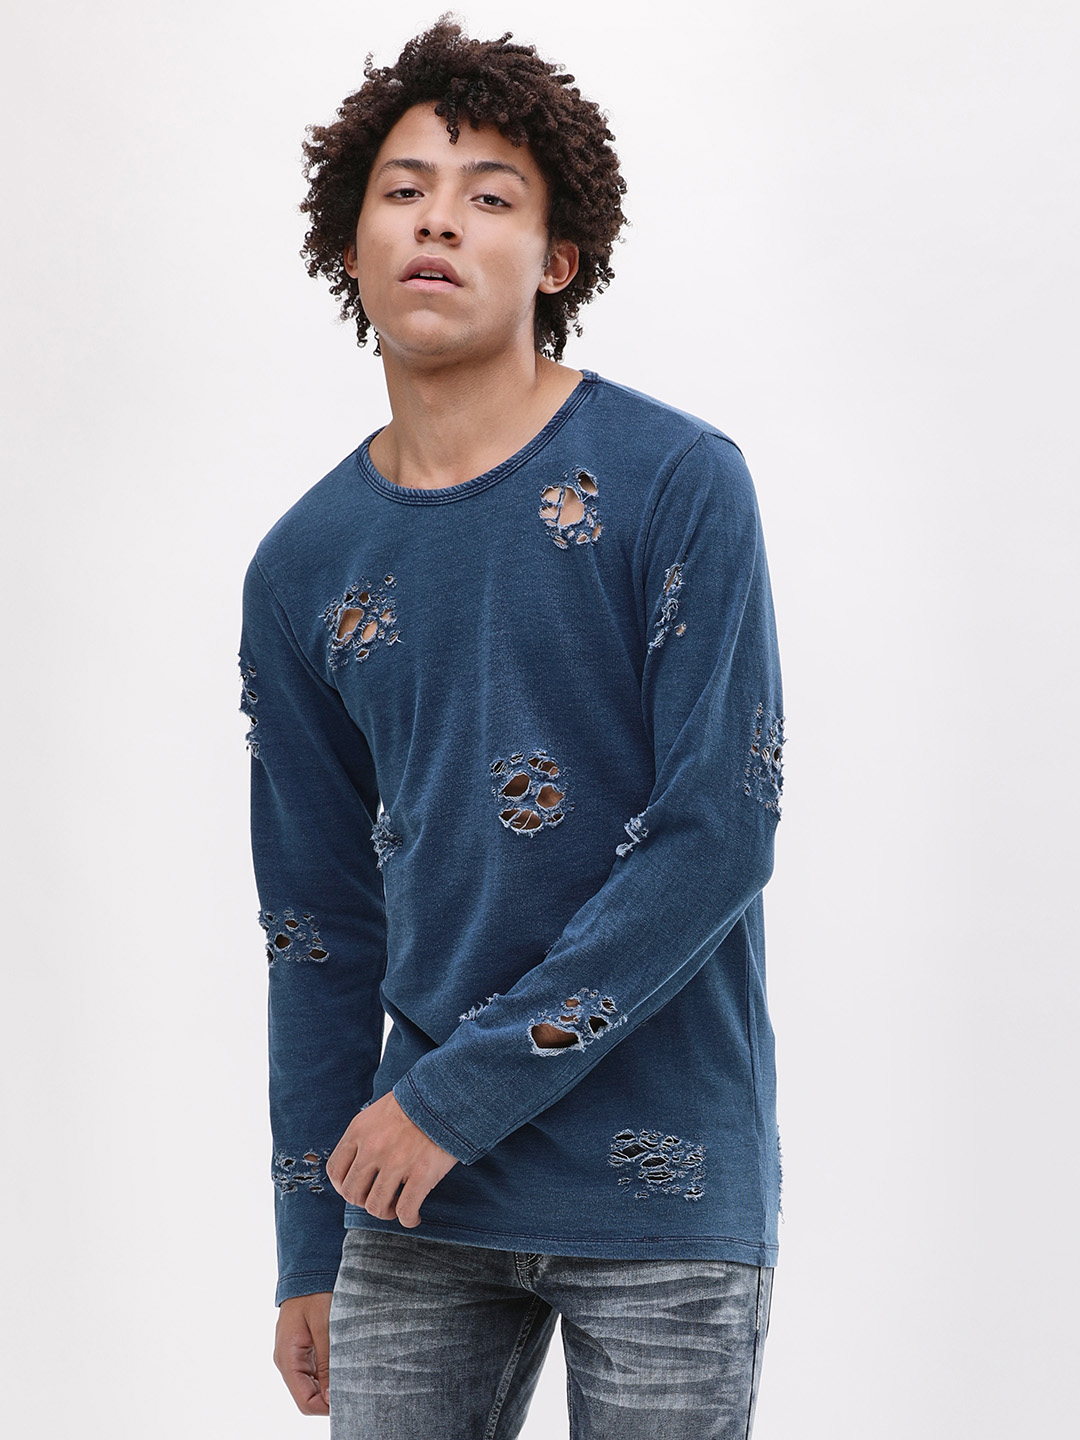 Adamo London Indigo Distressed Sweatshirt 1